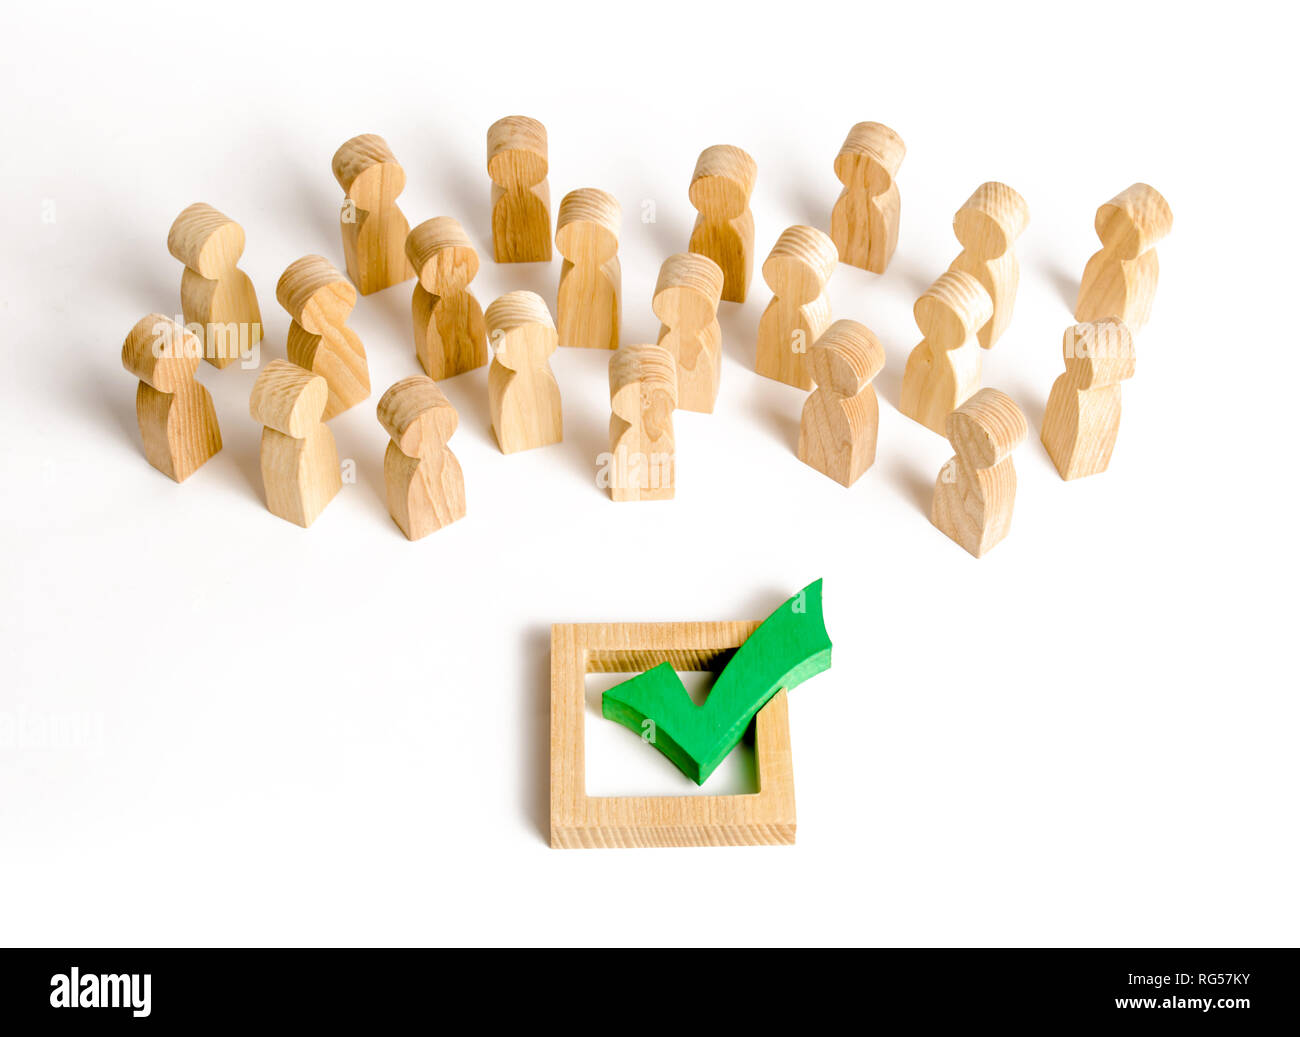 A crowd of people looks at a green check mark. Voting and election concept. Referendum, revolution. Forcible overthrow. Making the right decision, maj - Stock Image